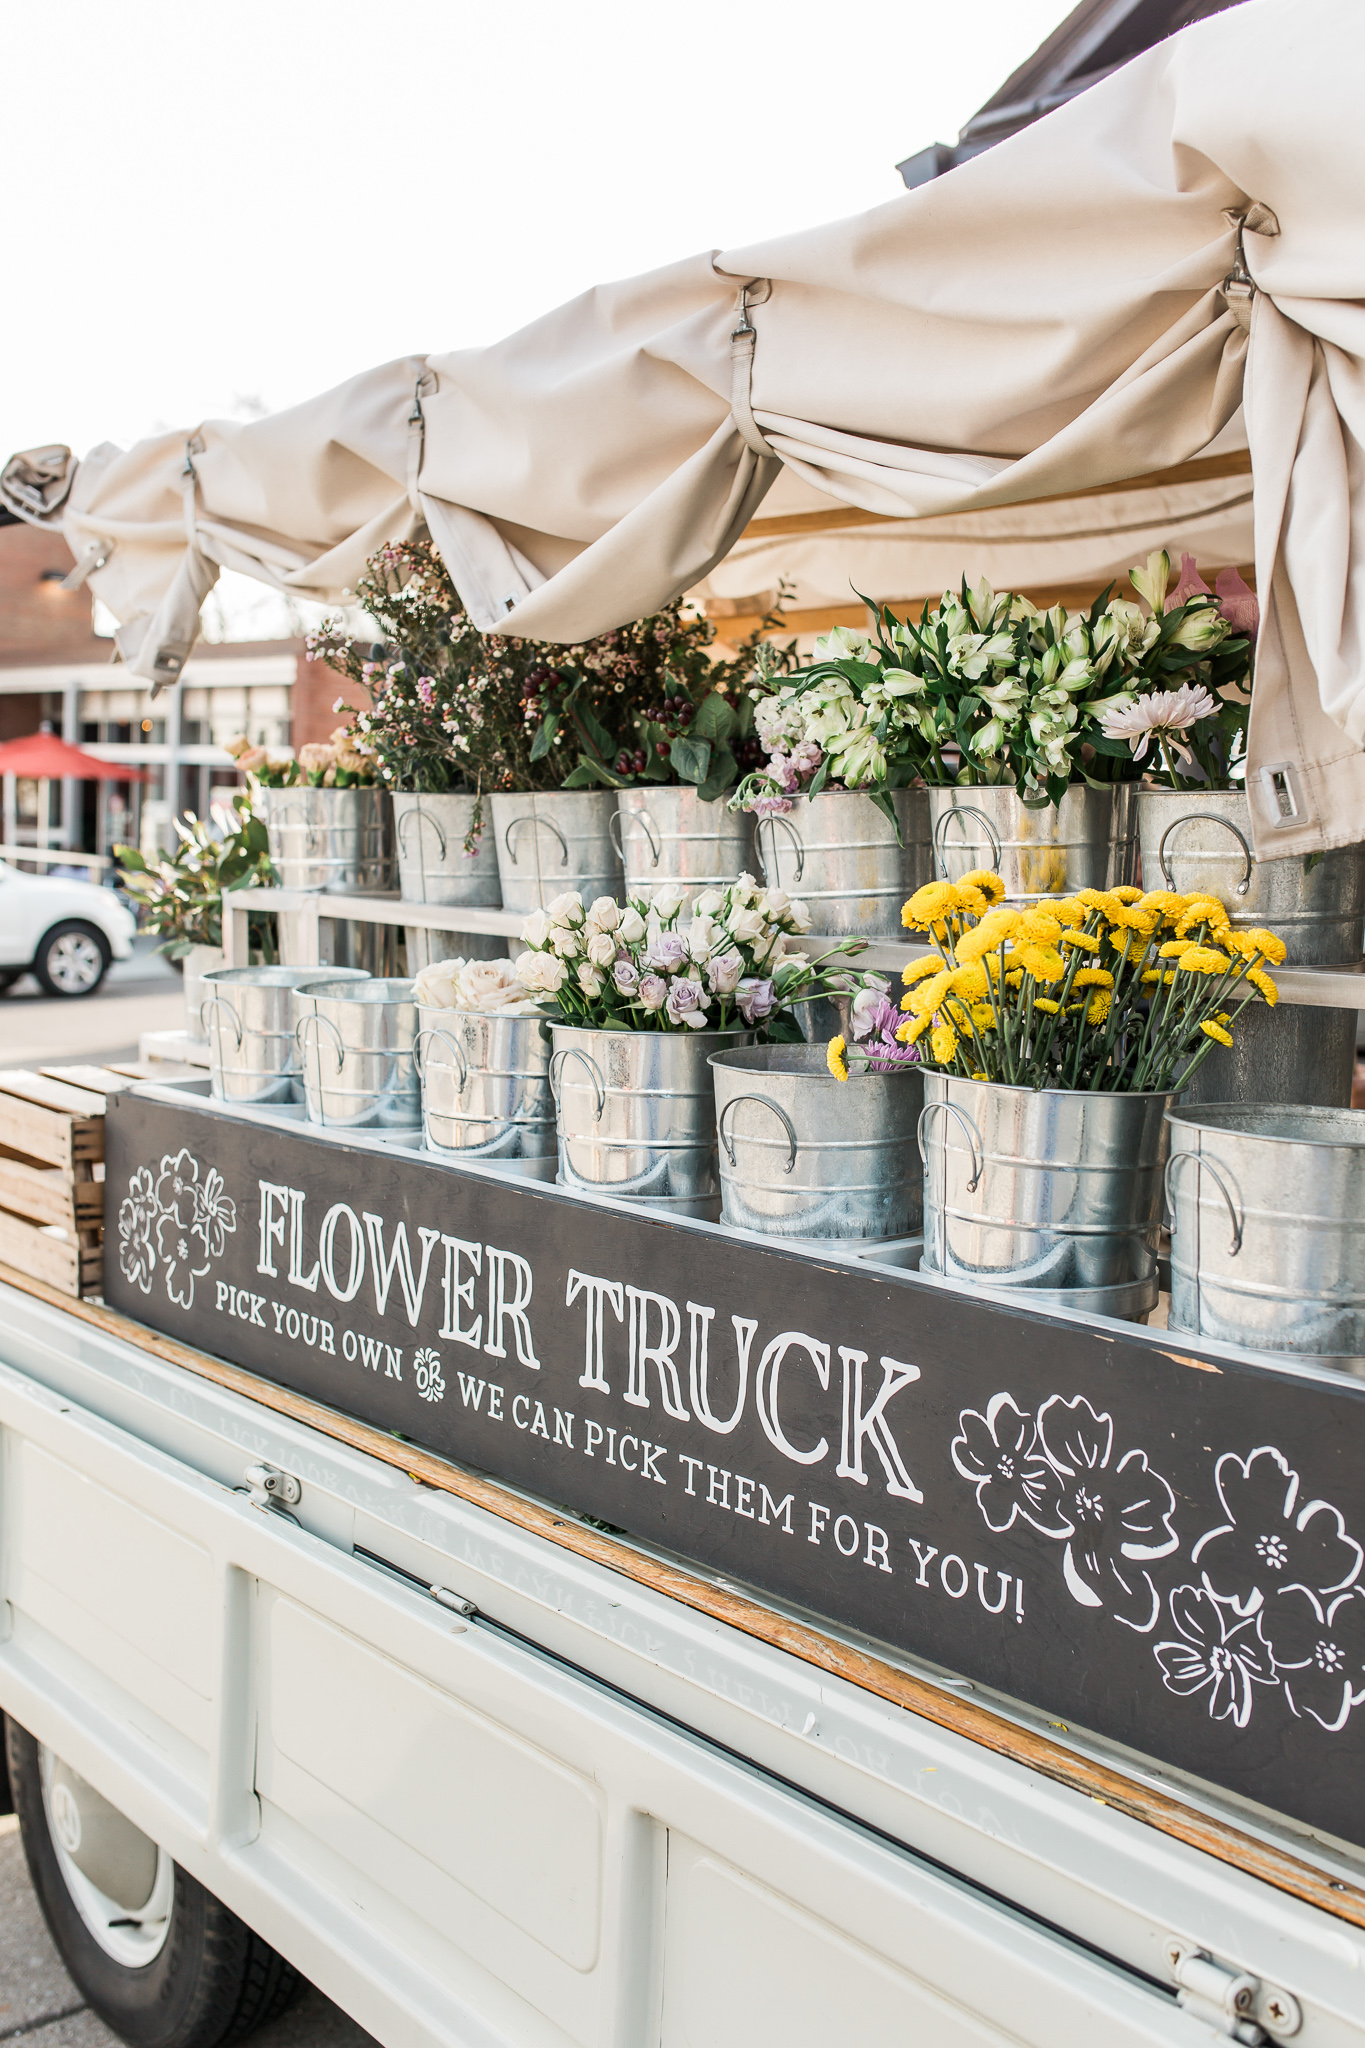 Amelia's Flower Truck - Constantly Changing Location